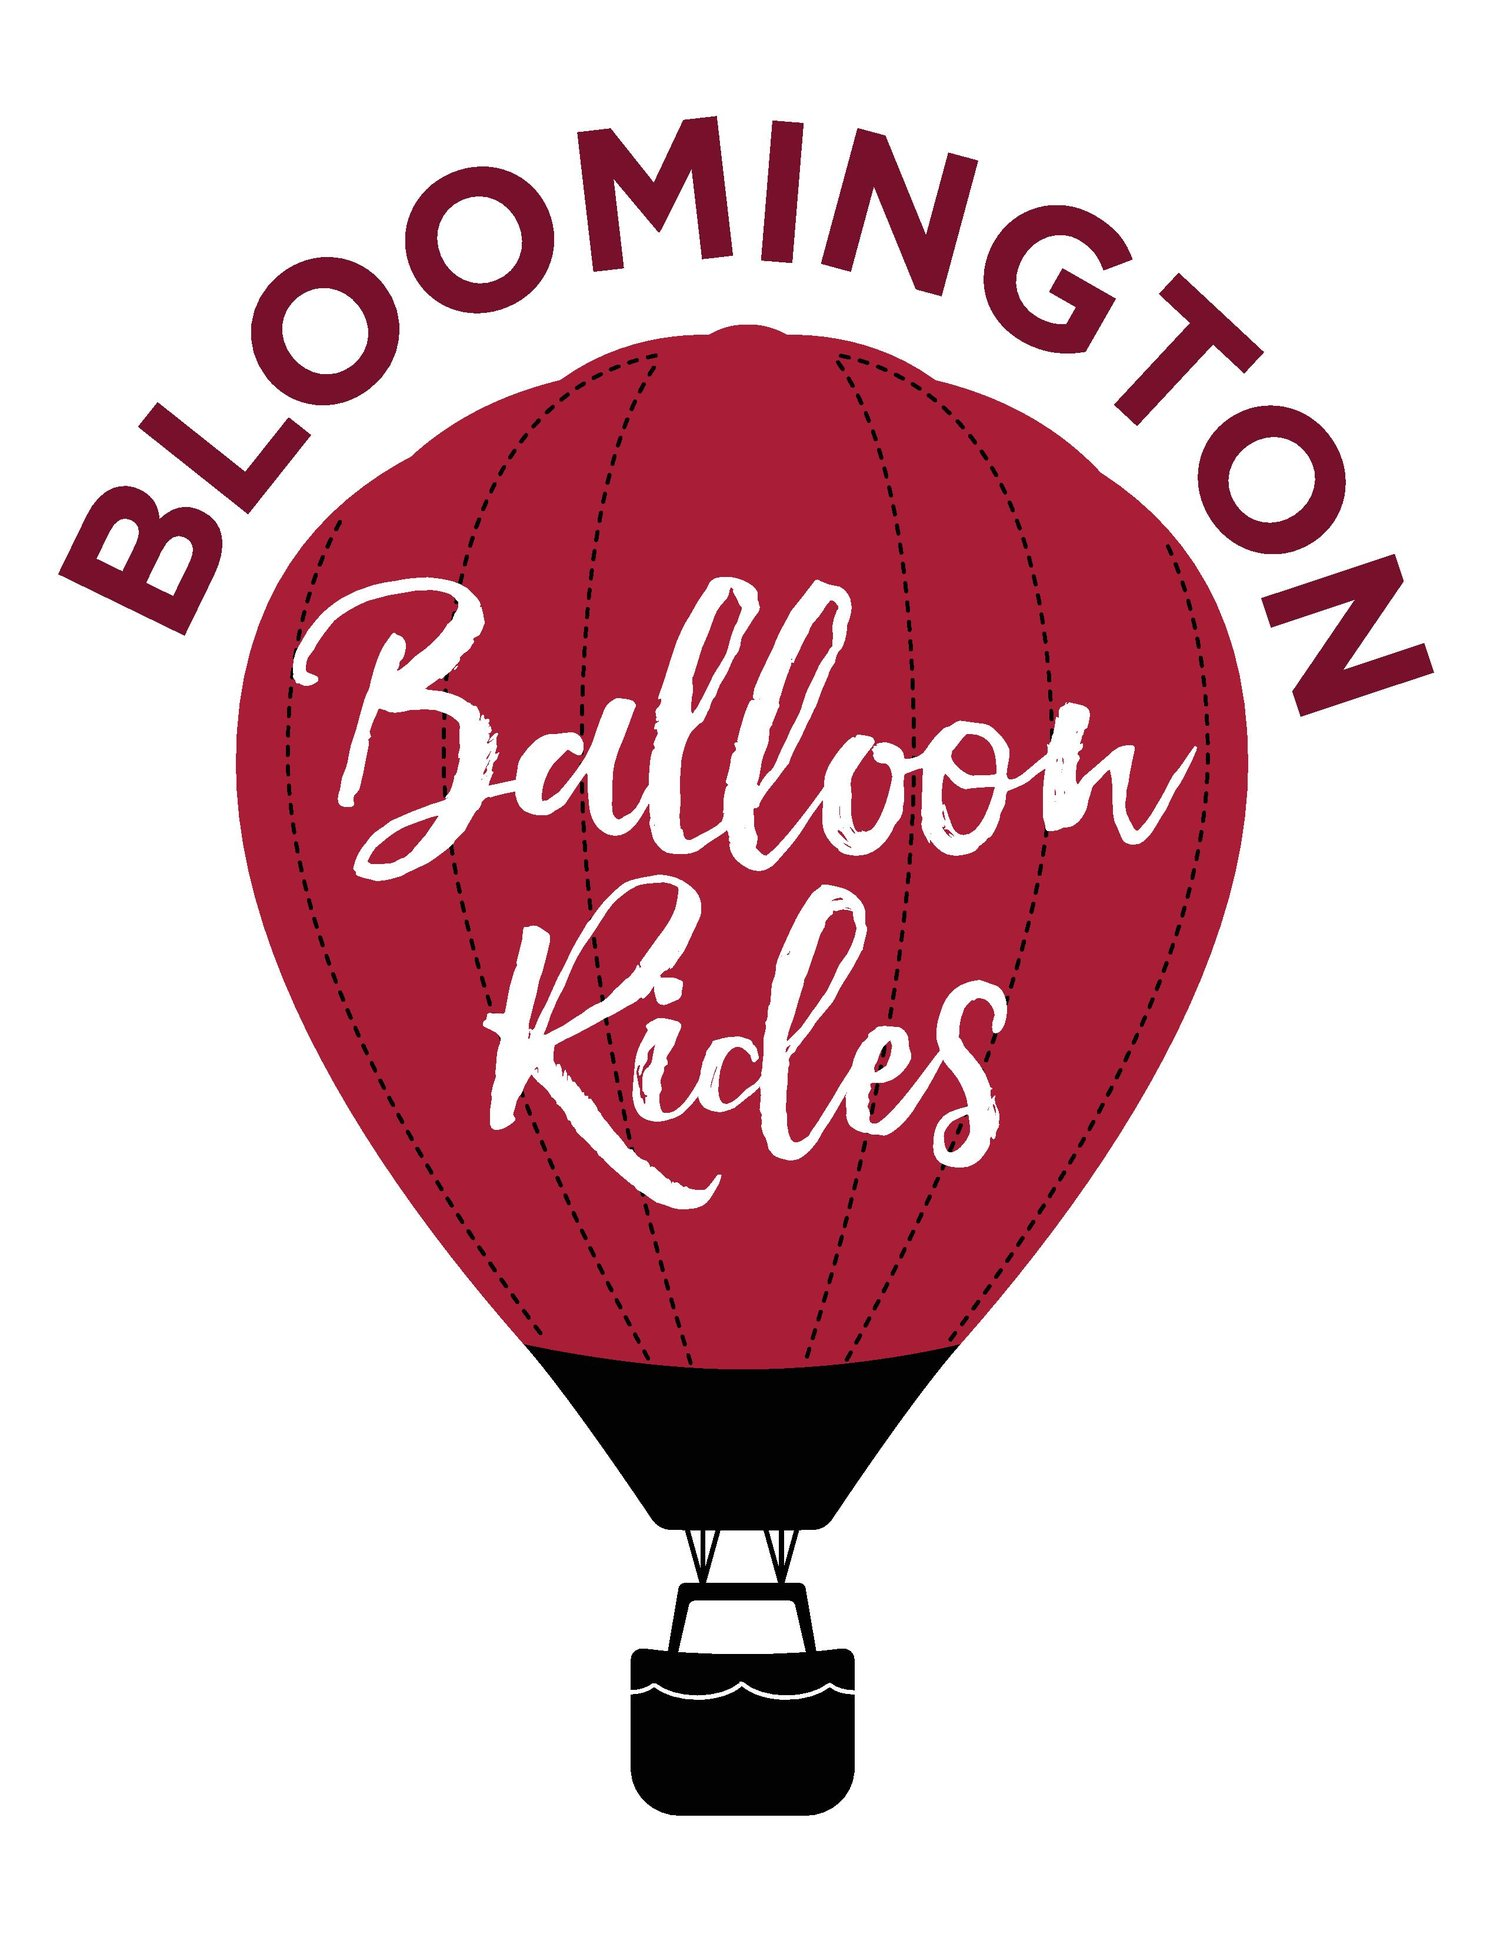 Bloomington Balloon Rides